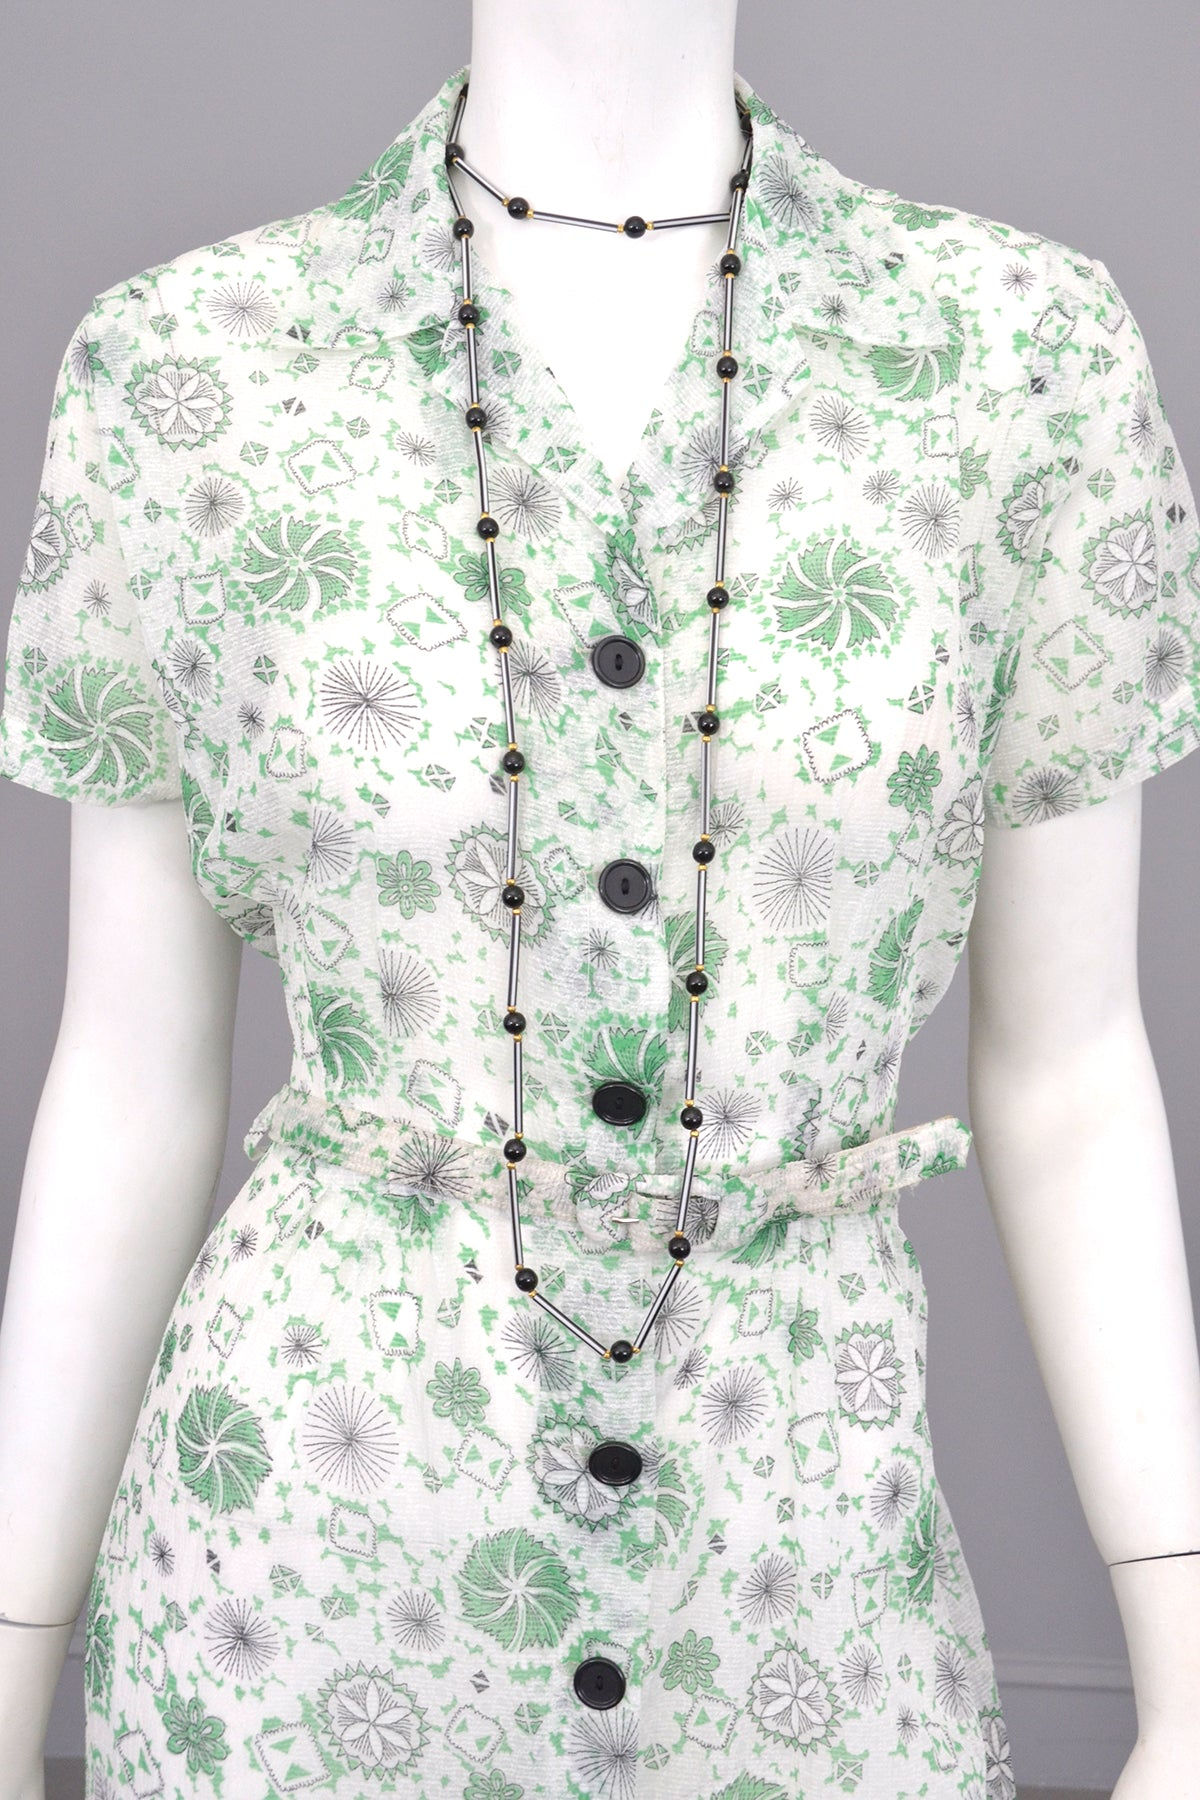 1940s White Sheer 'Seersucker' Spider Web Atomic Print Dress | 1940s Dress